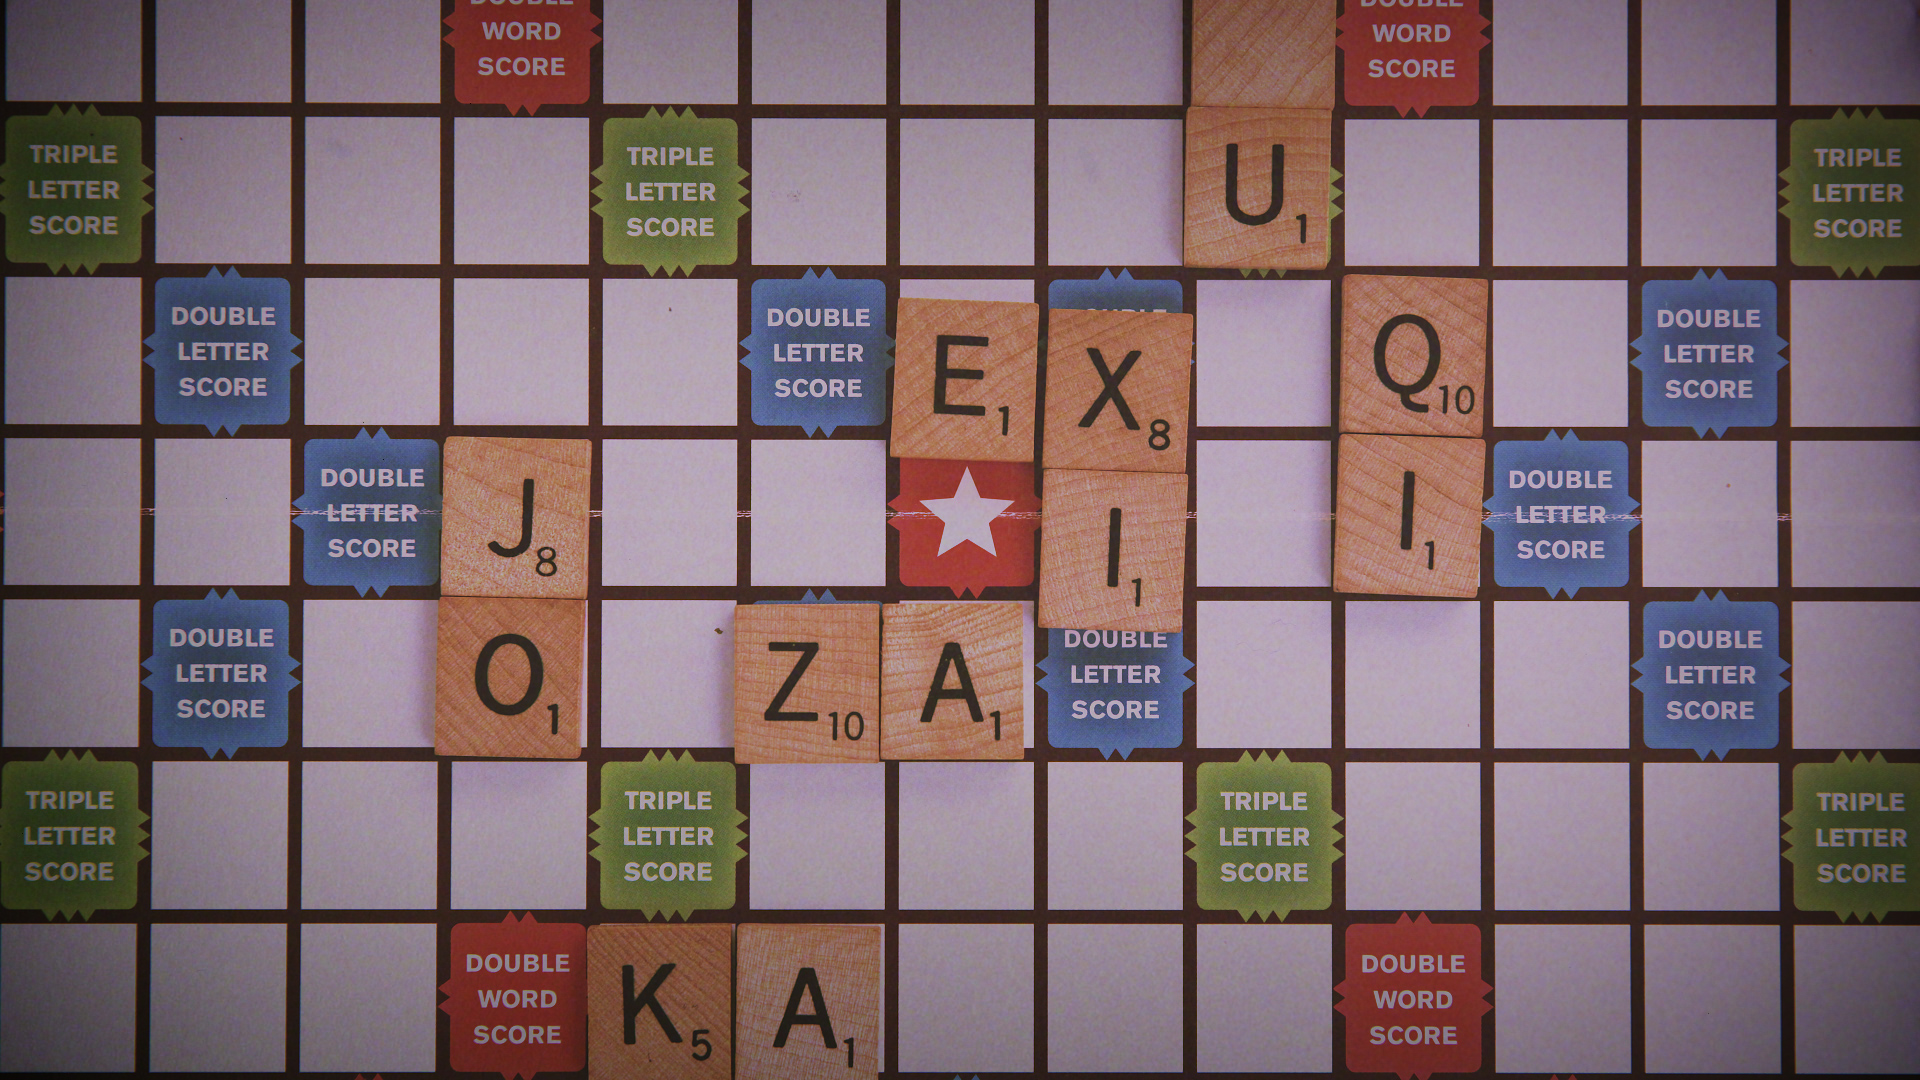 Learn these 8 Scrabble words to supercharge your game - Vox